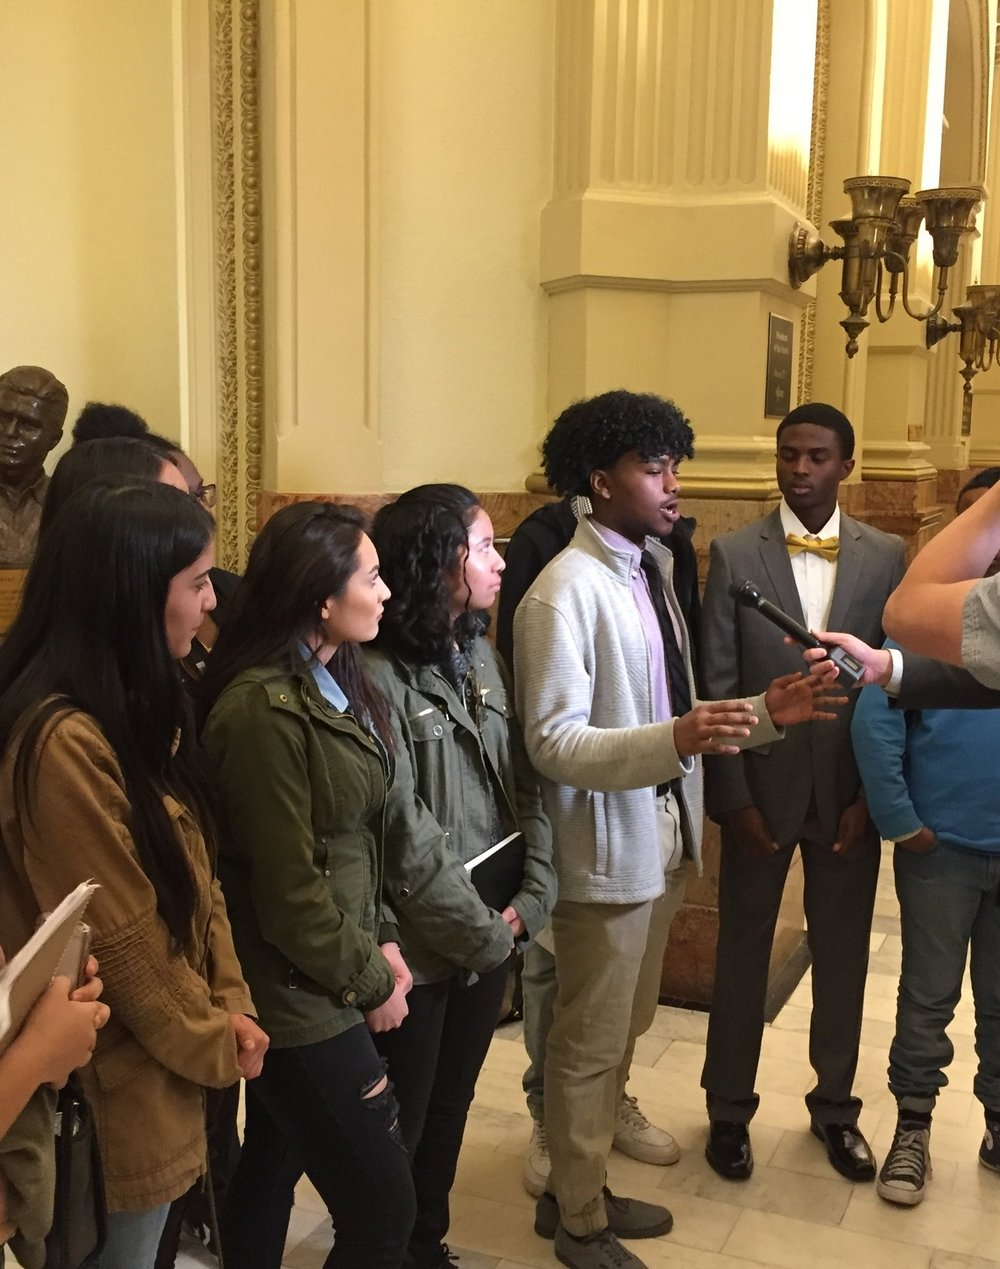 About SV2 - Student Voice, Student Vote (SV2) is a growing coalition of young people, parents, educators, youth organizations, and civic organizations seeking to change Colorado state law to allow 16- and 17-year-olds the right to vote in school board elections.Learn More